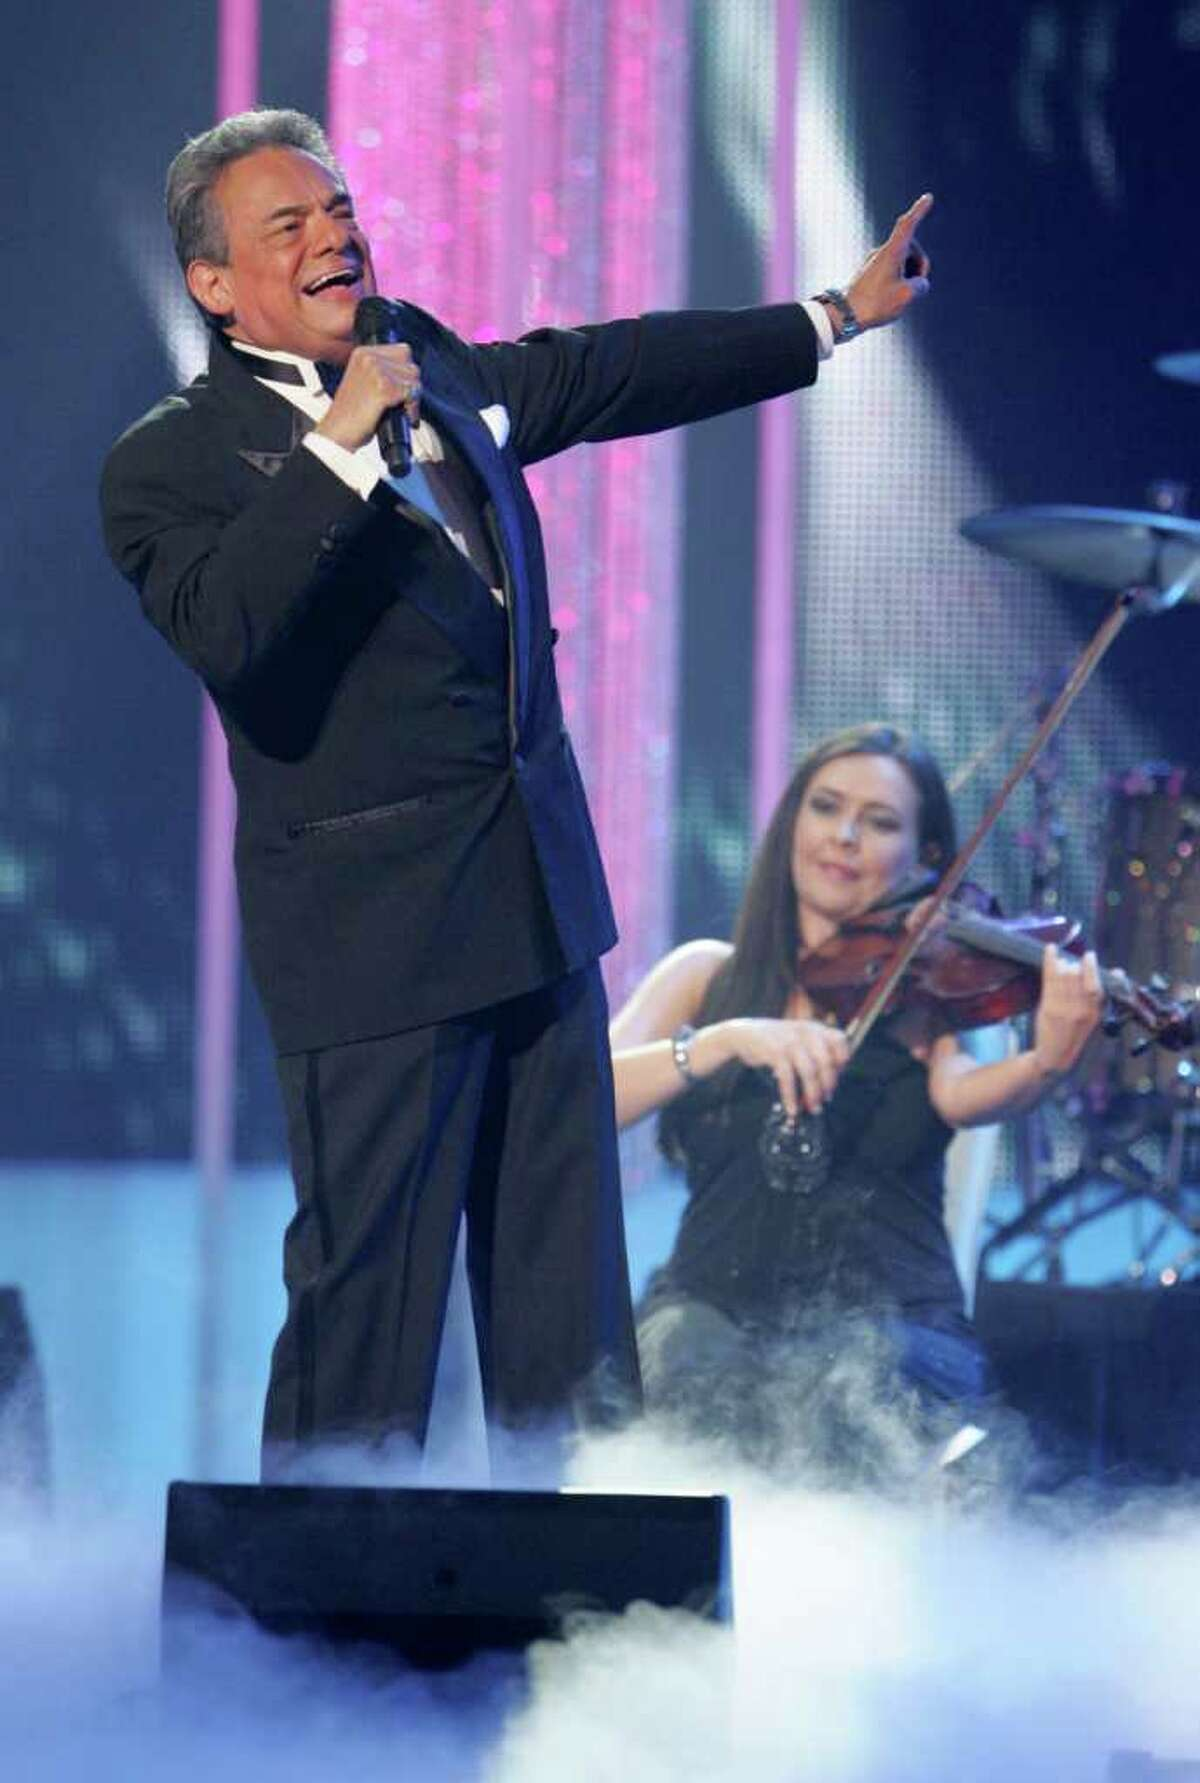 Singer Jose Jose performs during the Latin Billboard Awards, Thursday, April 28, 2011 in Coral Gables, Fla.